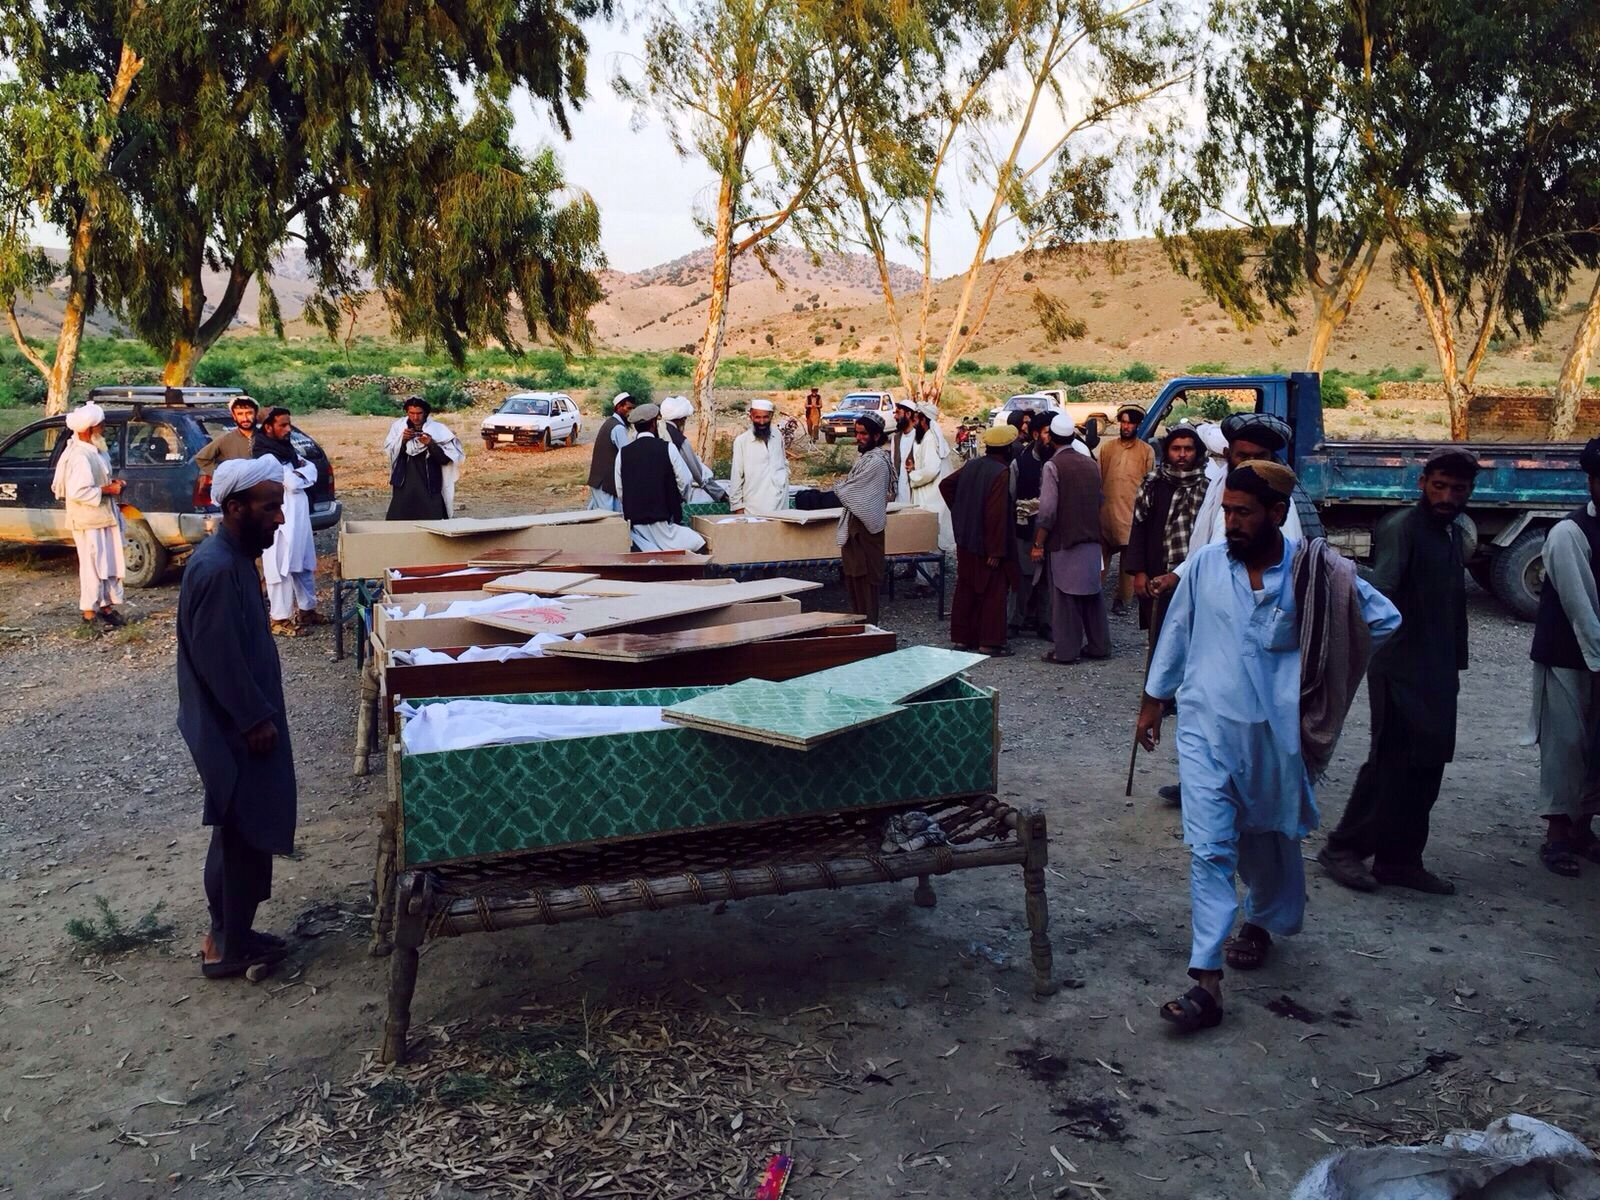 Kochi tribesmen stand around the open coffins of their family and friends after a drone strike killed 14 people who were either attending a wedding or returning from an attack on a police outpost. The attack hit on June 5 2015 in Khost province, Afghanistan.